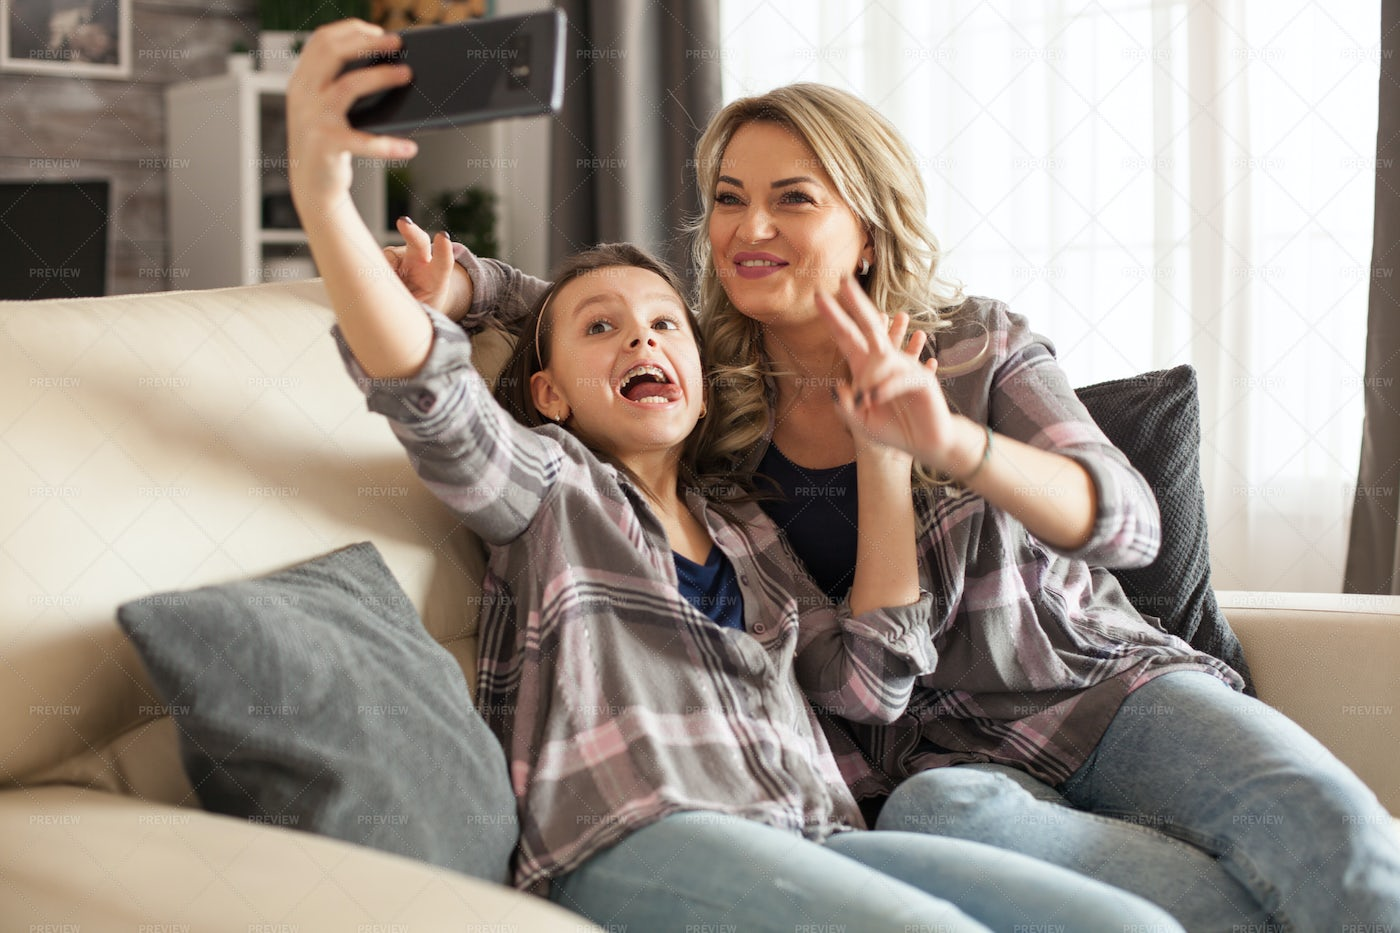 Silly Faces For The Camera: Stock Photos